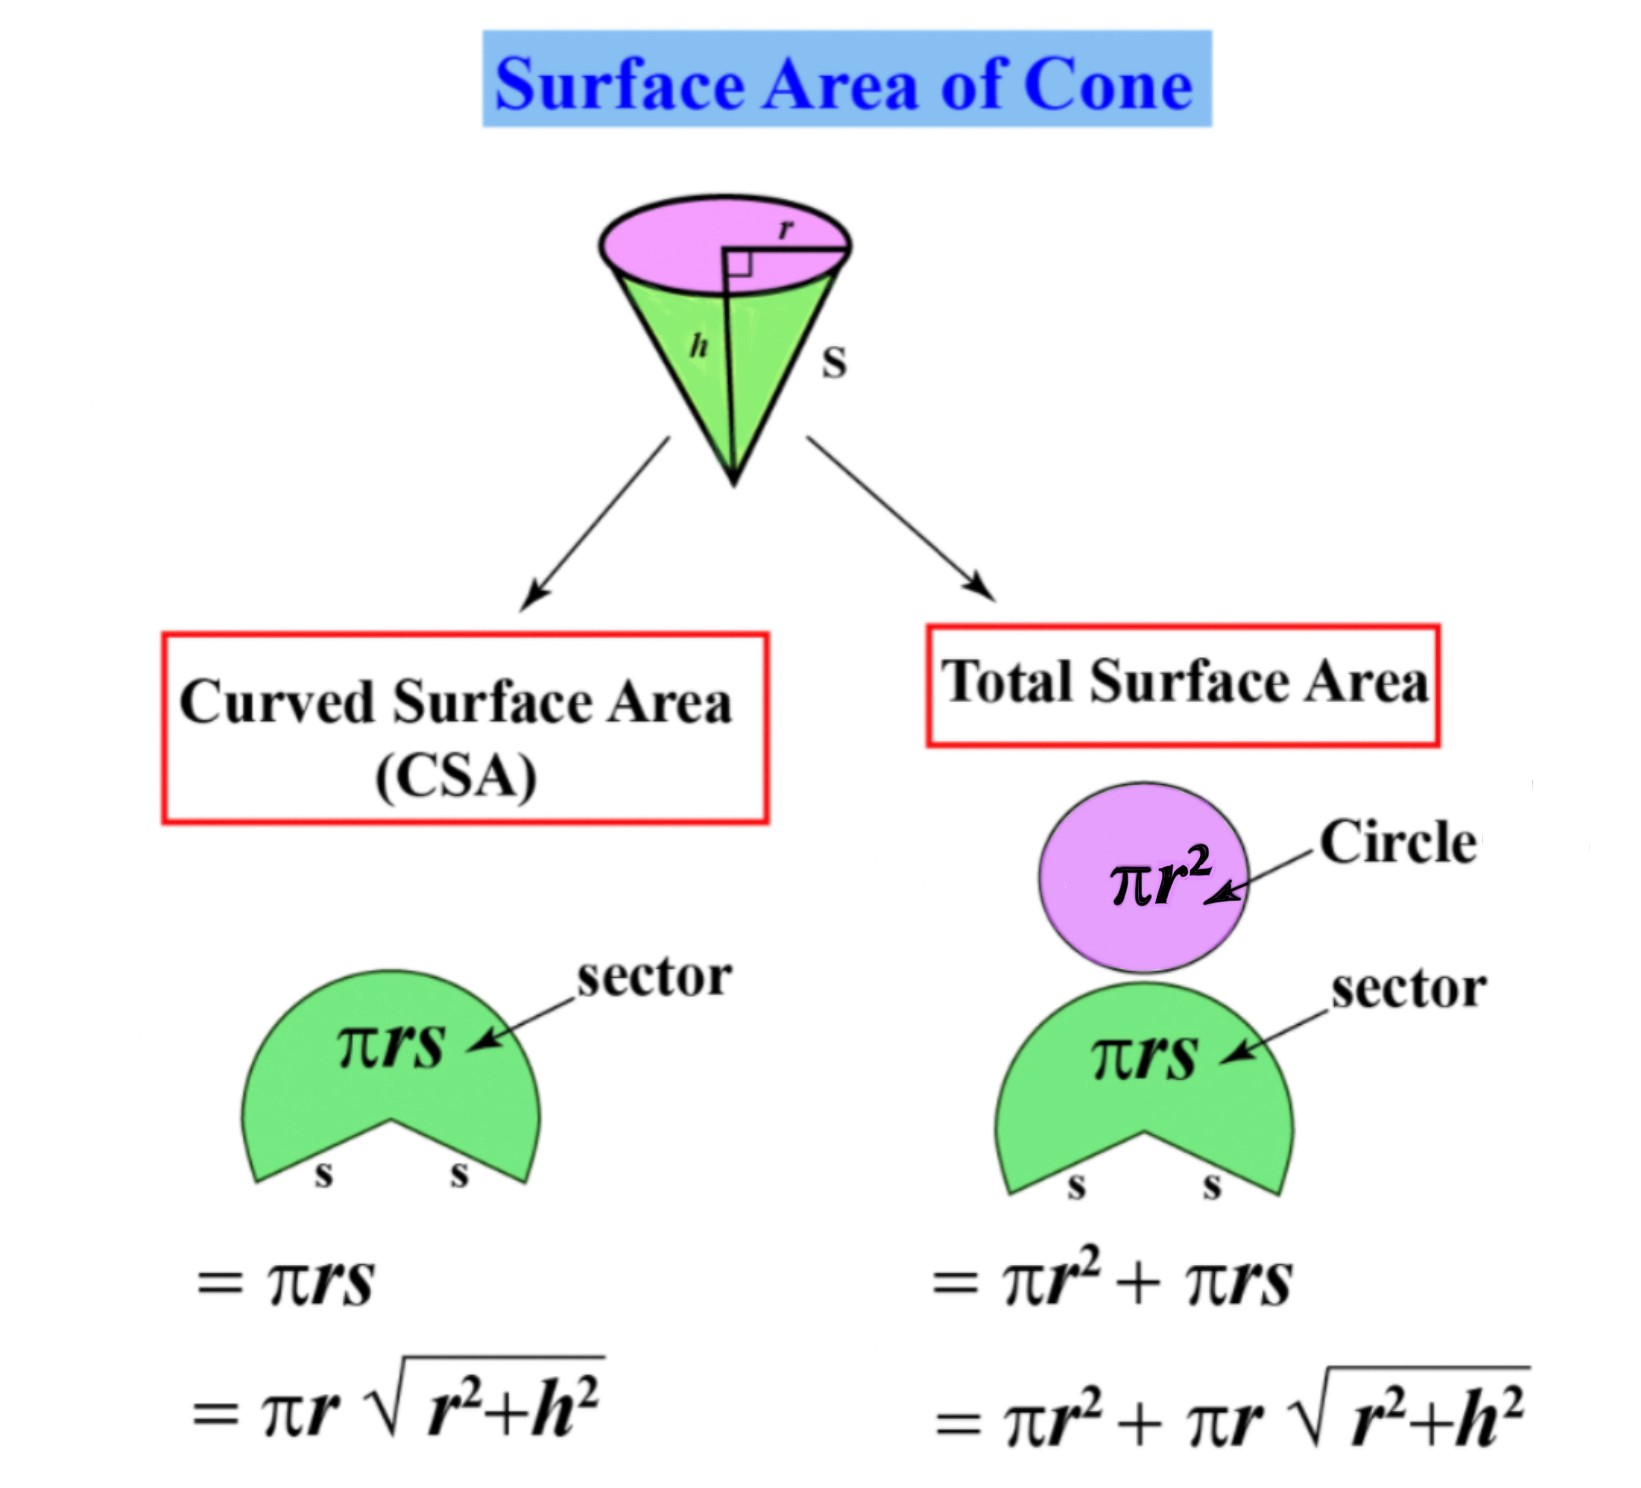 Surface areas of cone